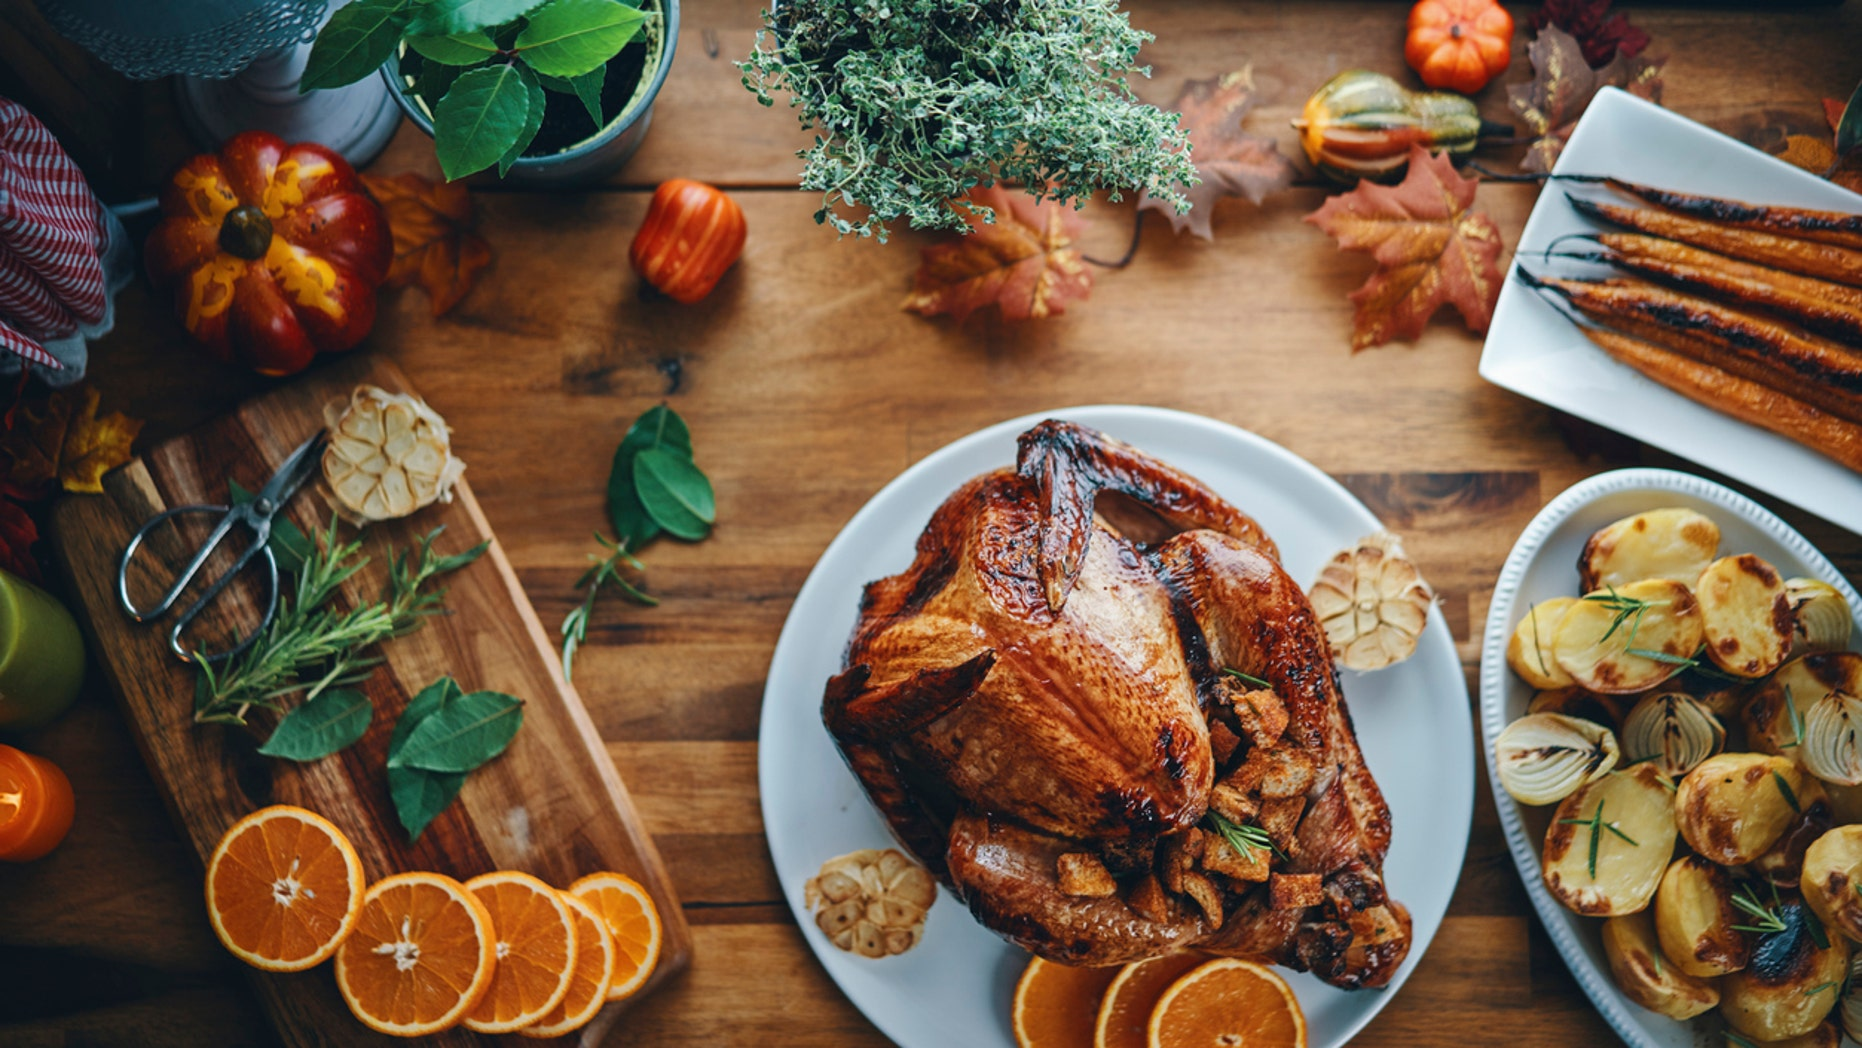 You can still have a fulfilling Thanksgiving, just by focusing on taking care of yourself and others.